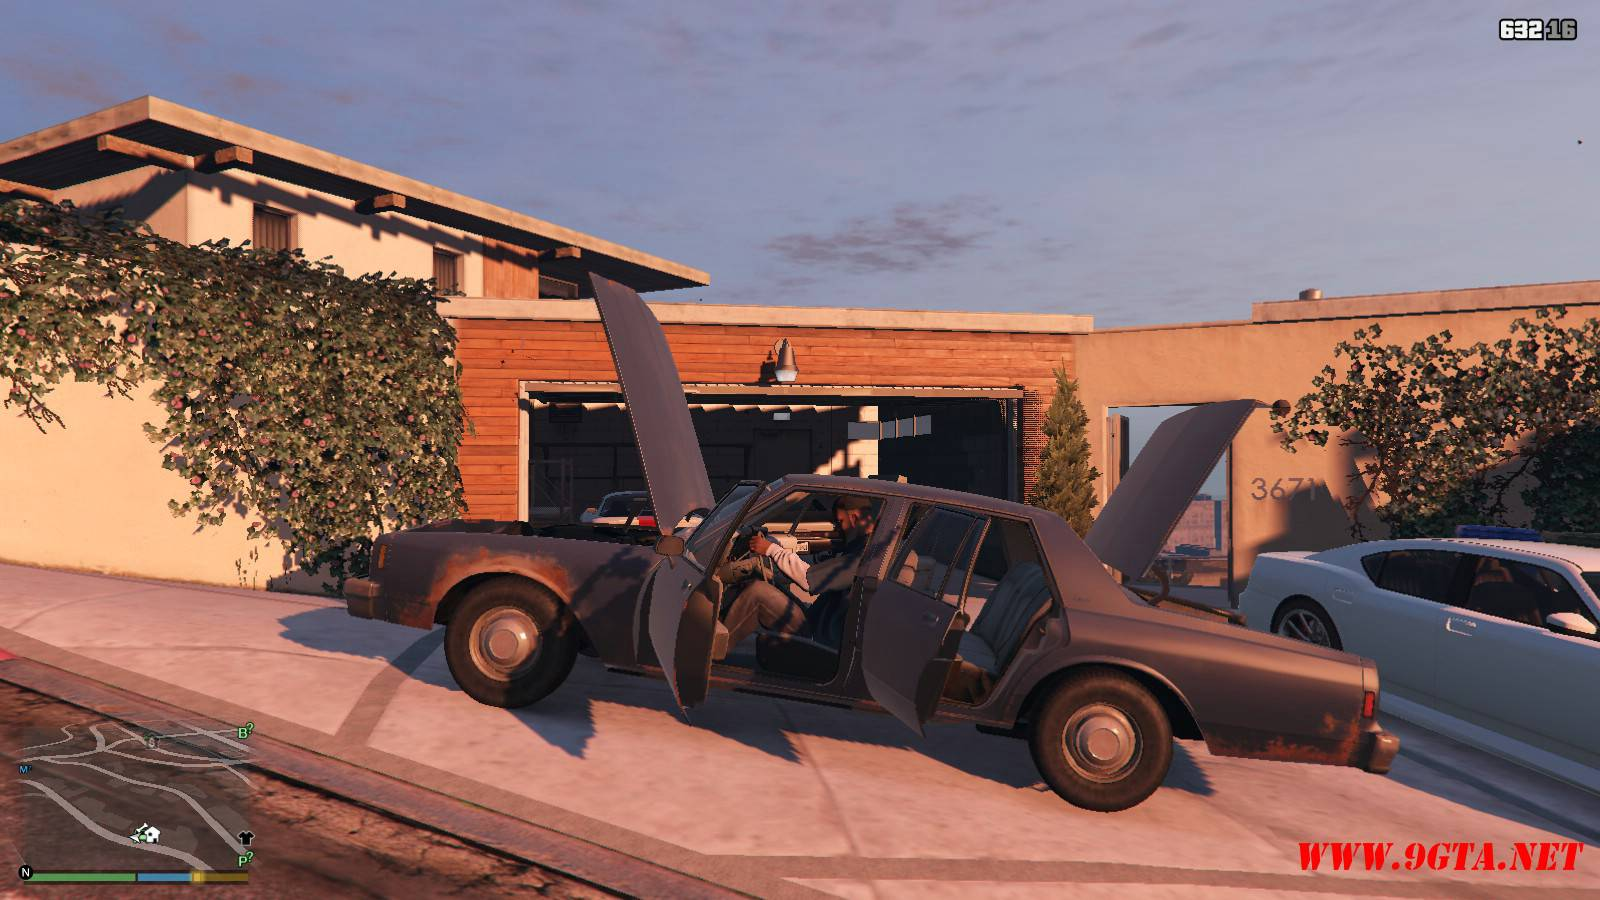 1985 Chevrolet Impala v1.1 Mod For GTA5 (16)